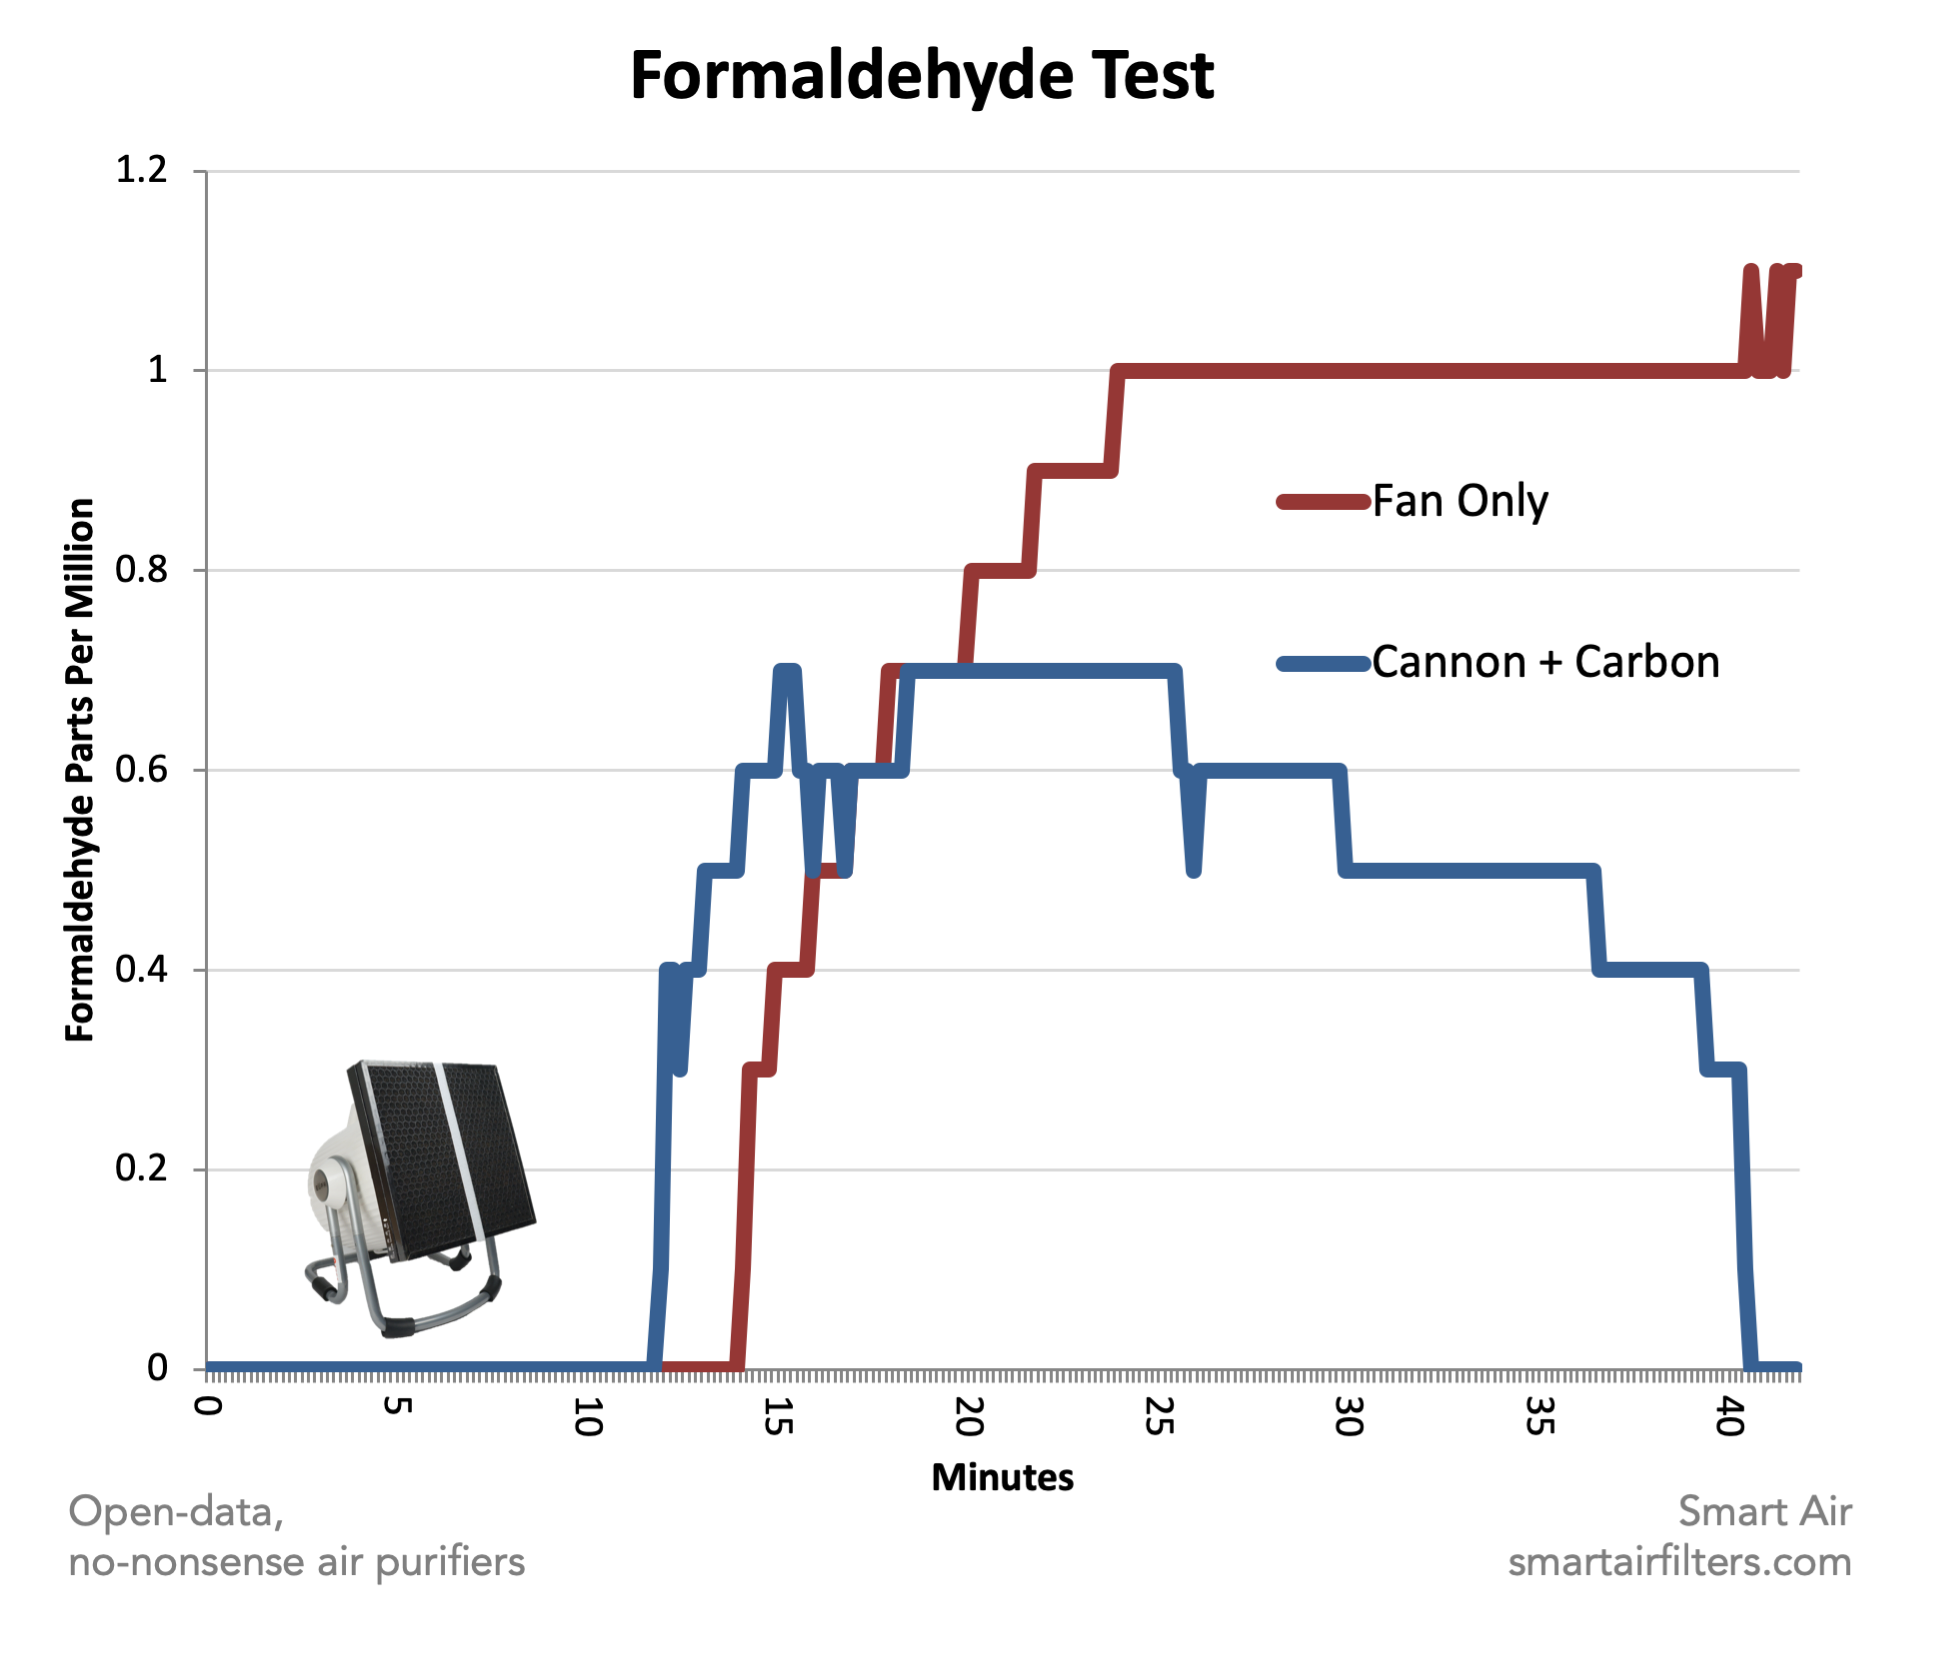 Formaldehyde activated carbon test data